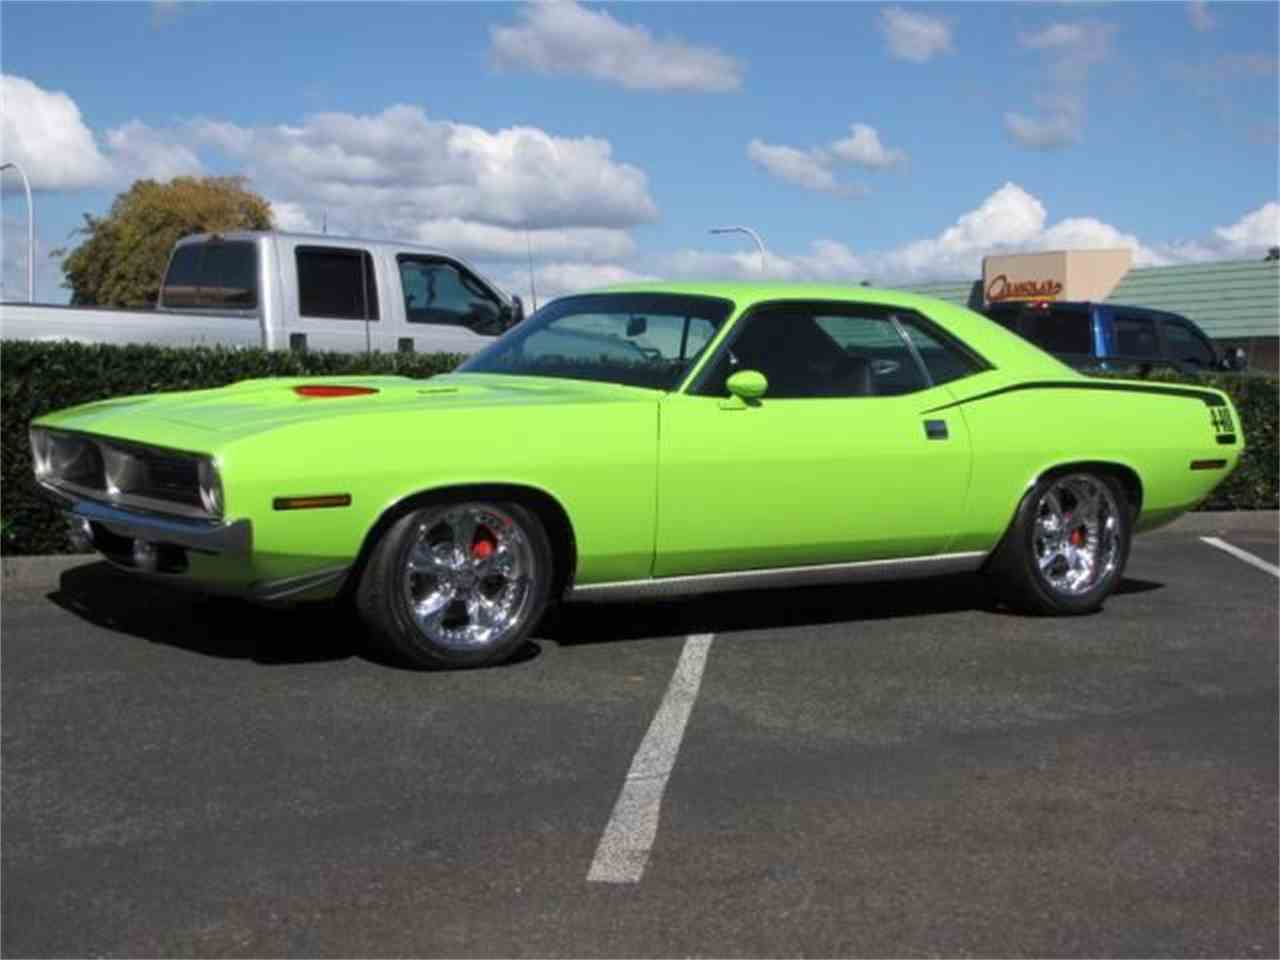 wiring diagram for 1970 plymouth barracuda wiring wiring classifieds for 1970 plymouth barracuda 18 available wiring diagram for plymouth barracuda